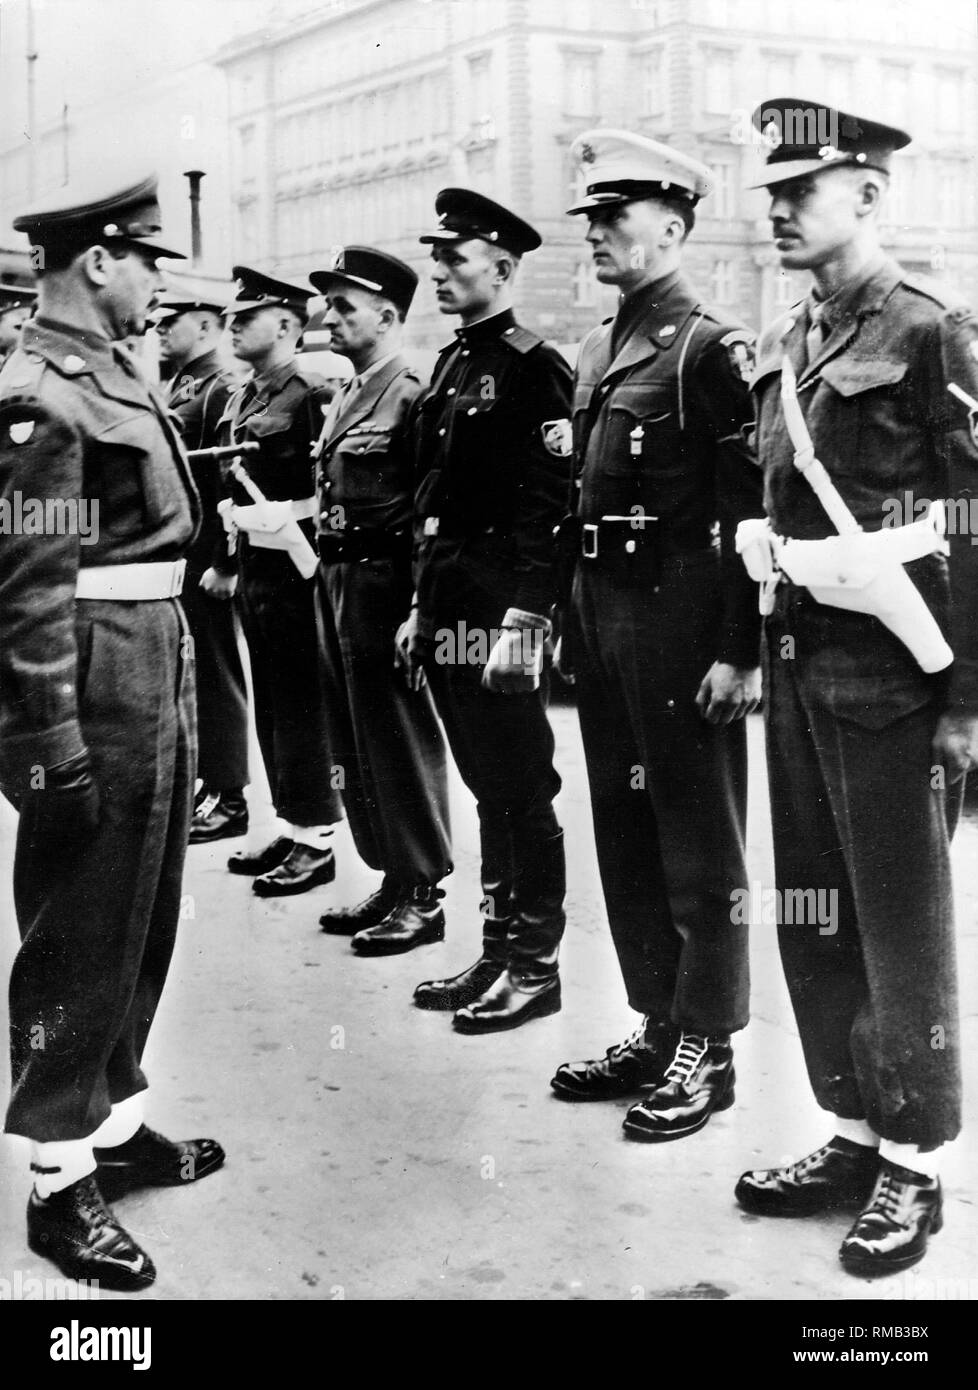 The international sector of Vienna is controlled by an international police force made up of all four occupying powers. An American, British, French and Russian military policeman form a patrol, and the superiors appoint a different occupation force regularly every month. Here, British Major Georges D. Pillitz, deployed at this moment as a watch commander, calls together a morning assembly. - Stock Image